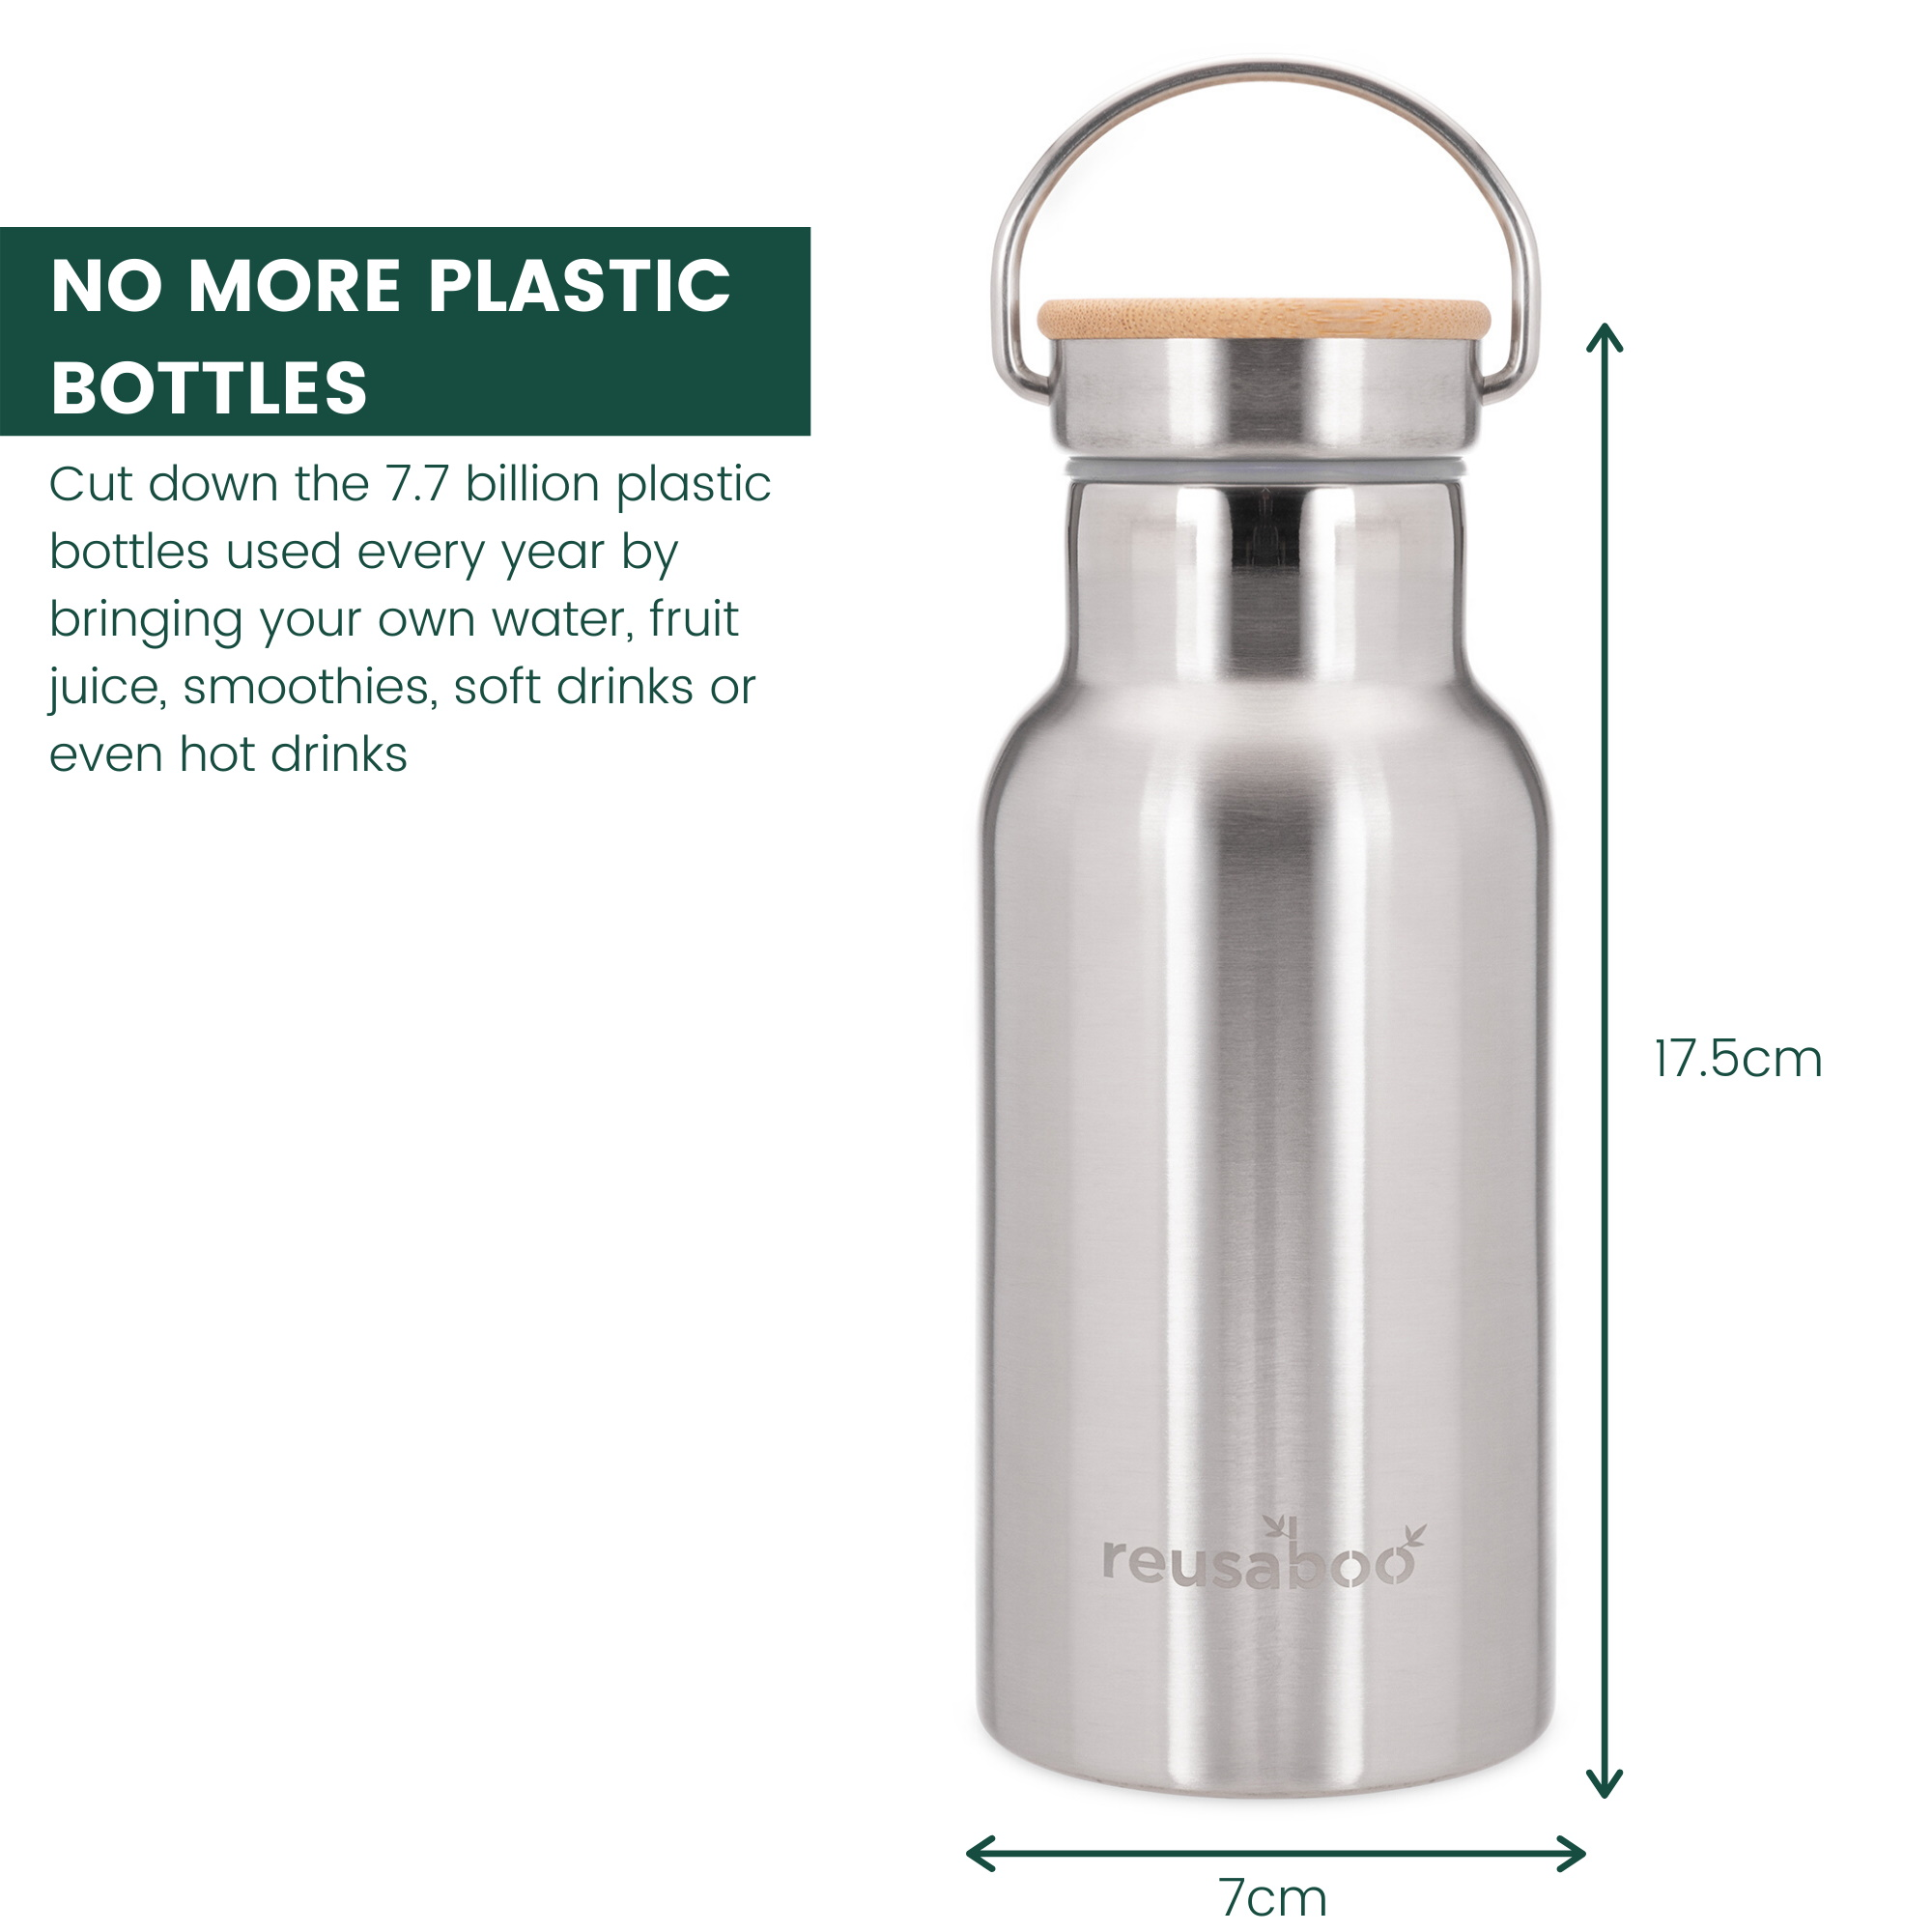 Reusaboo Stainless Steel Water Bottle with Bamboo Lid